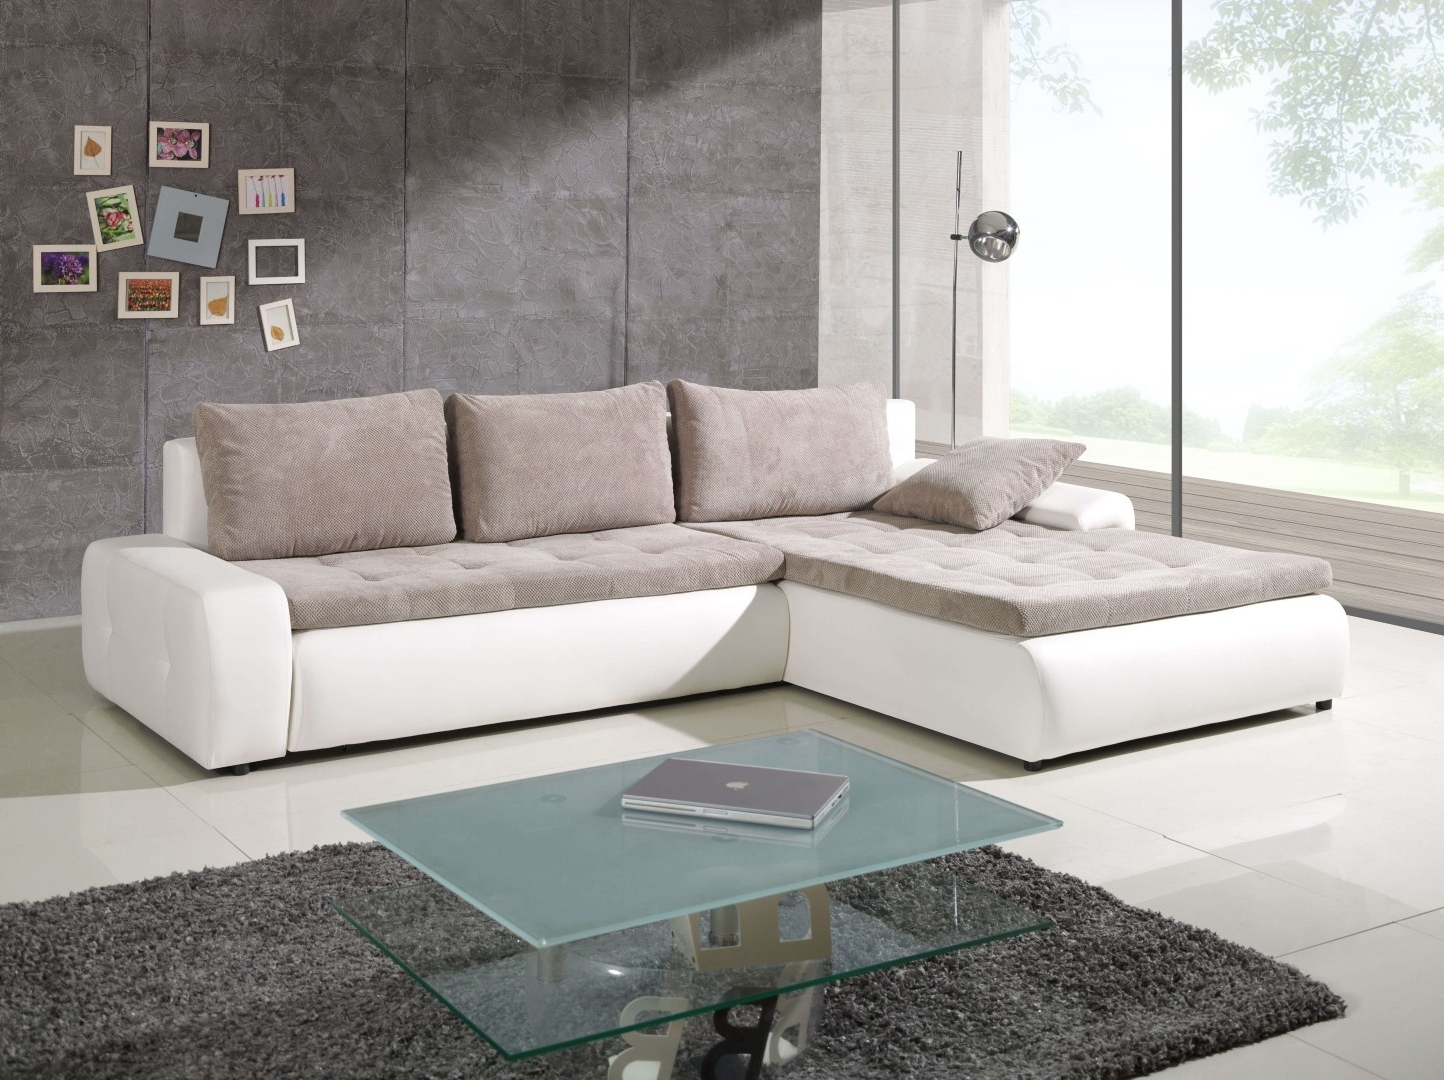 Sectional Sofas With Storage Intended For Recent Shop Galileo Sectional Sleeper Sofa With Storage Universal (View 11 of 15)